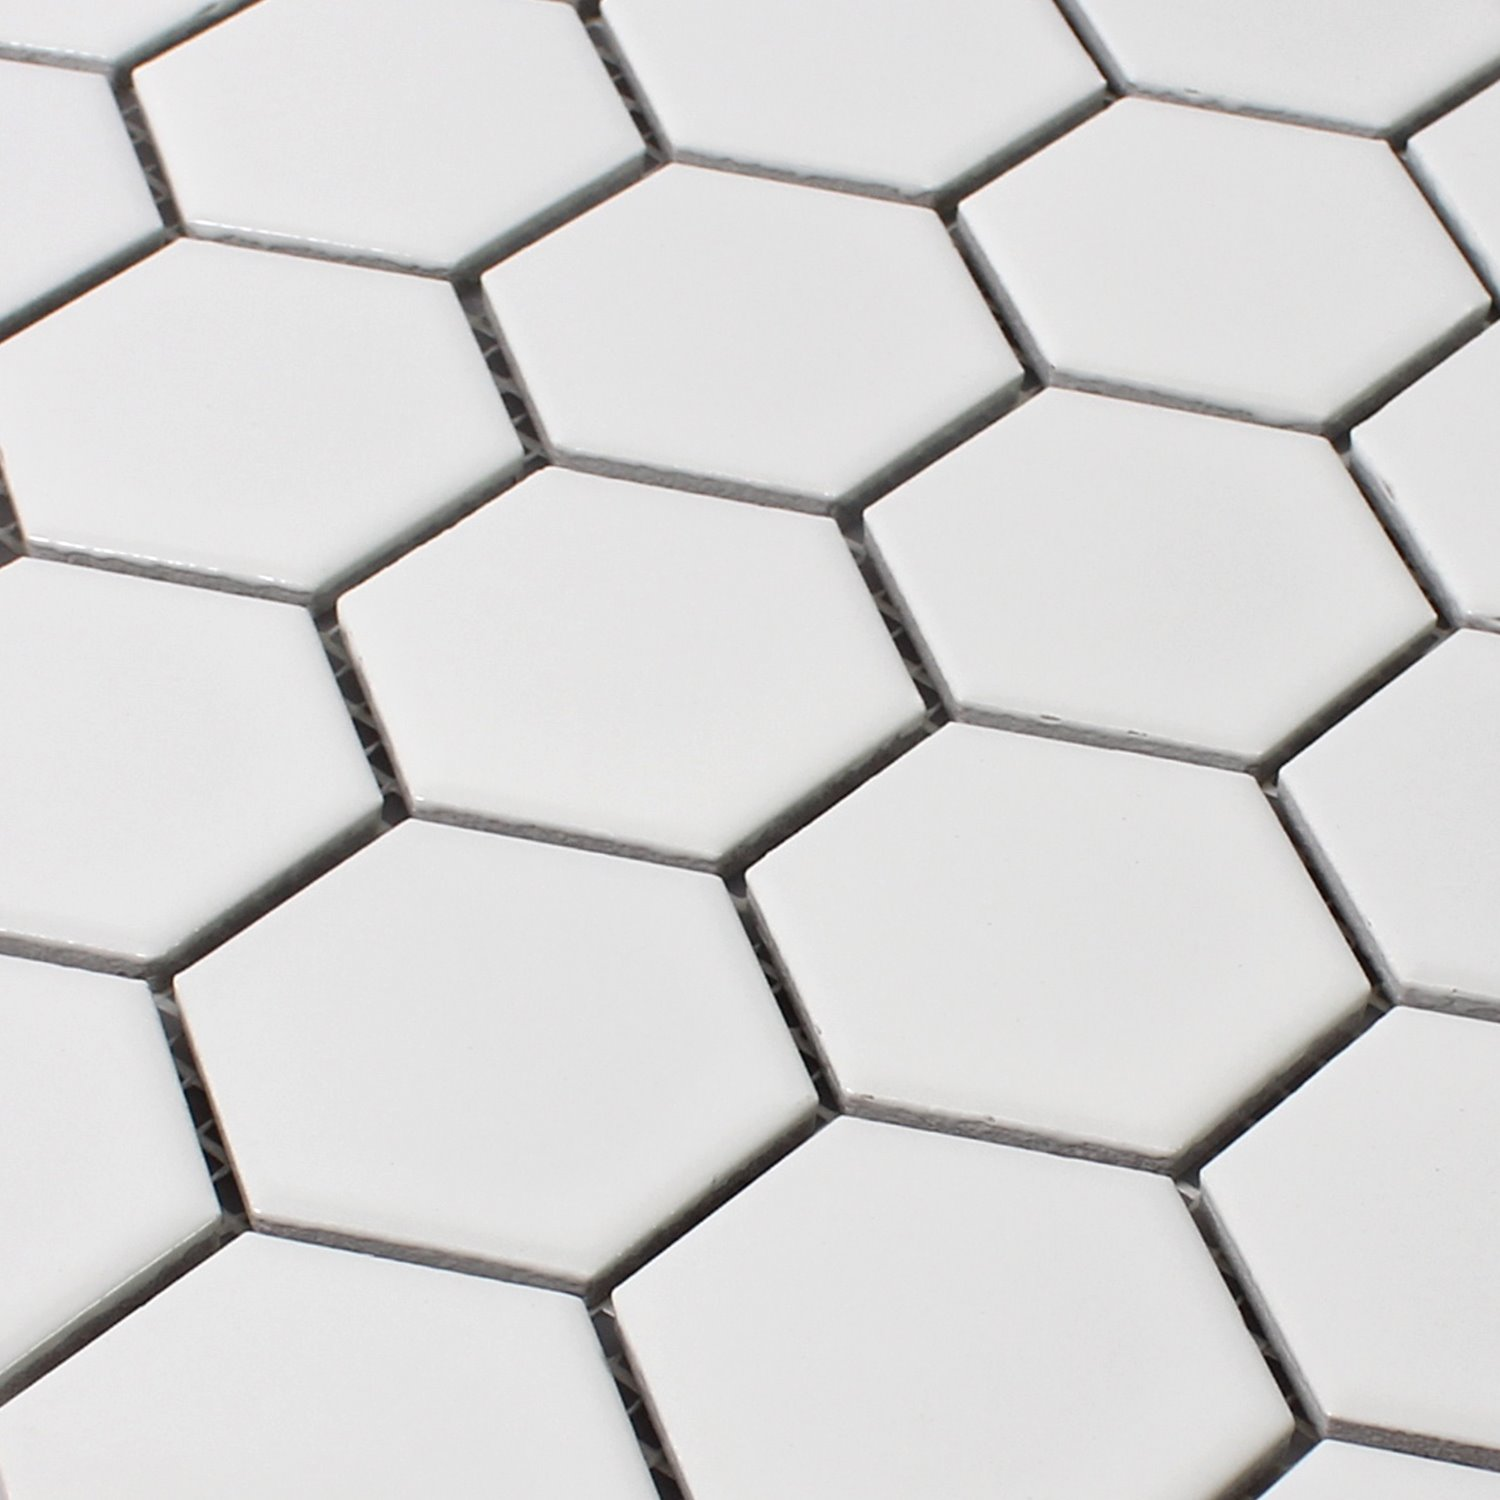 Carrelage hexagonal blanc id es de conception sont int ress - Carrelage hexagonal blanc ...